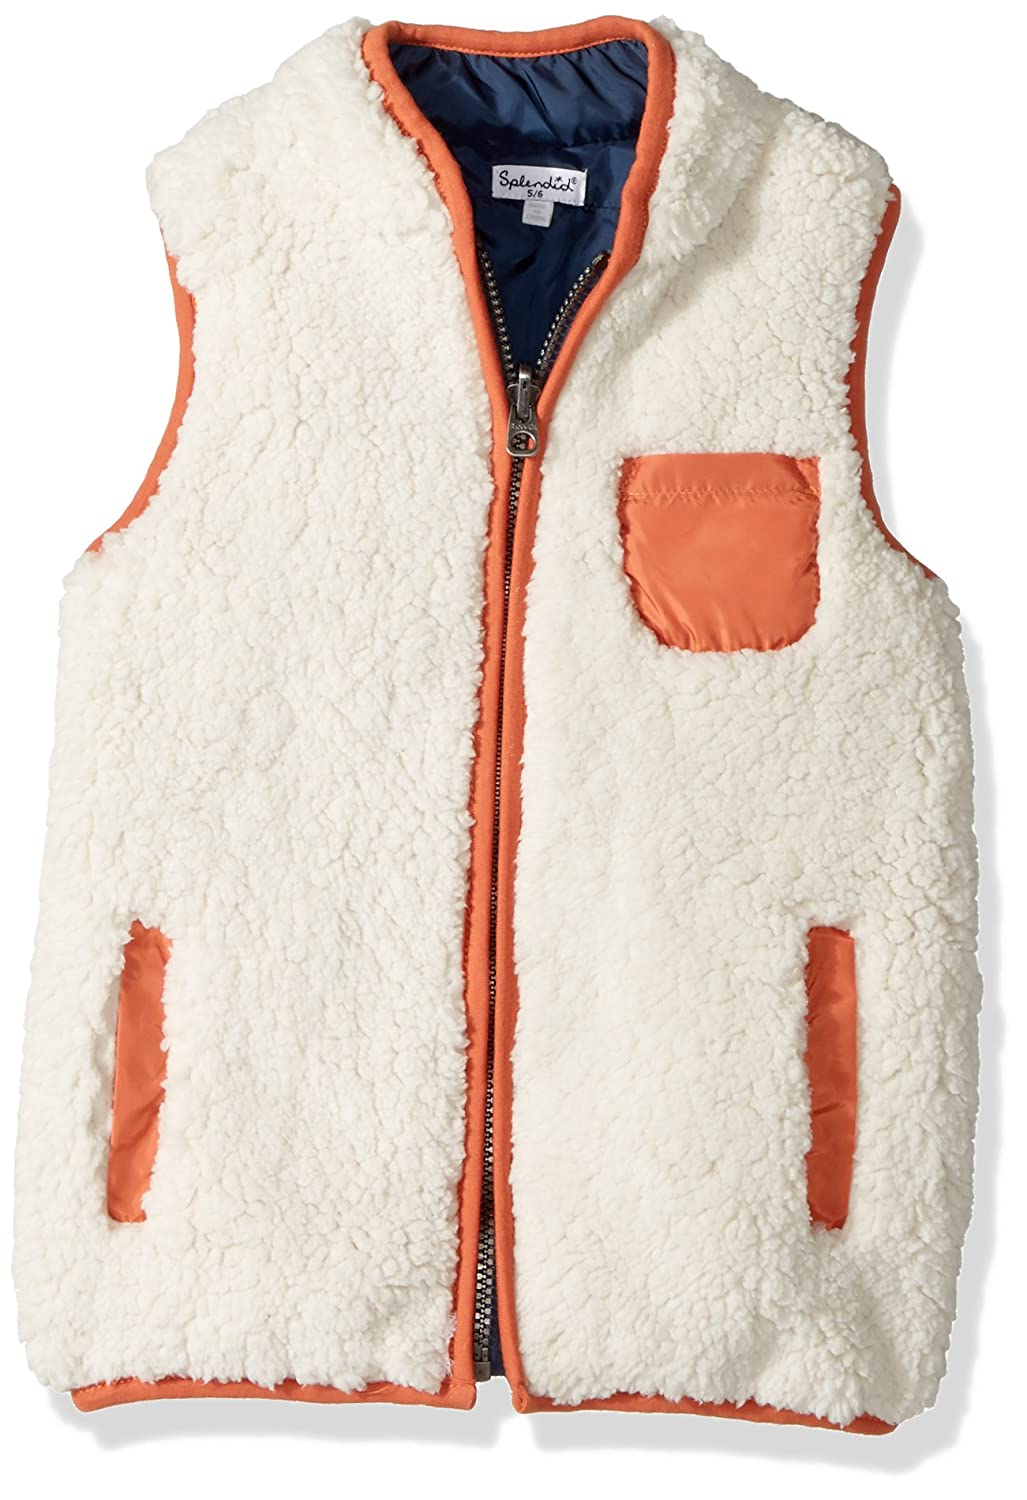 Splendid Boys' Reversible Sherpa Vest Off White 4/5 DBE03835V